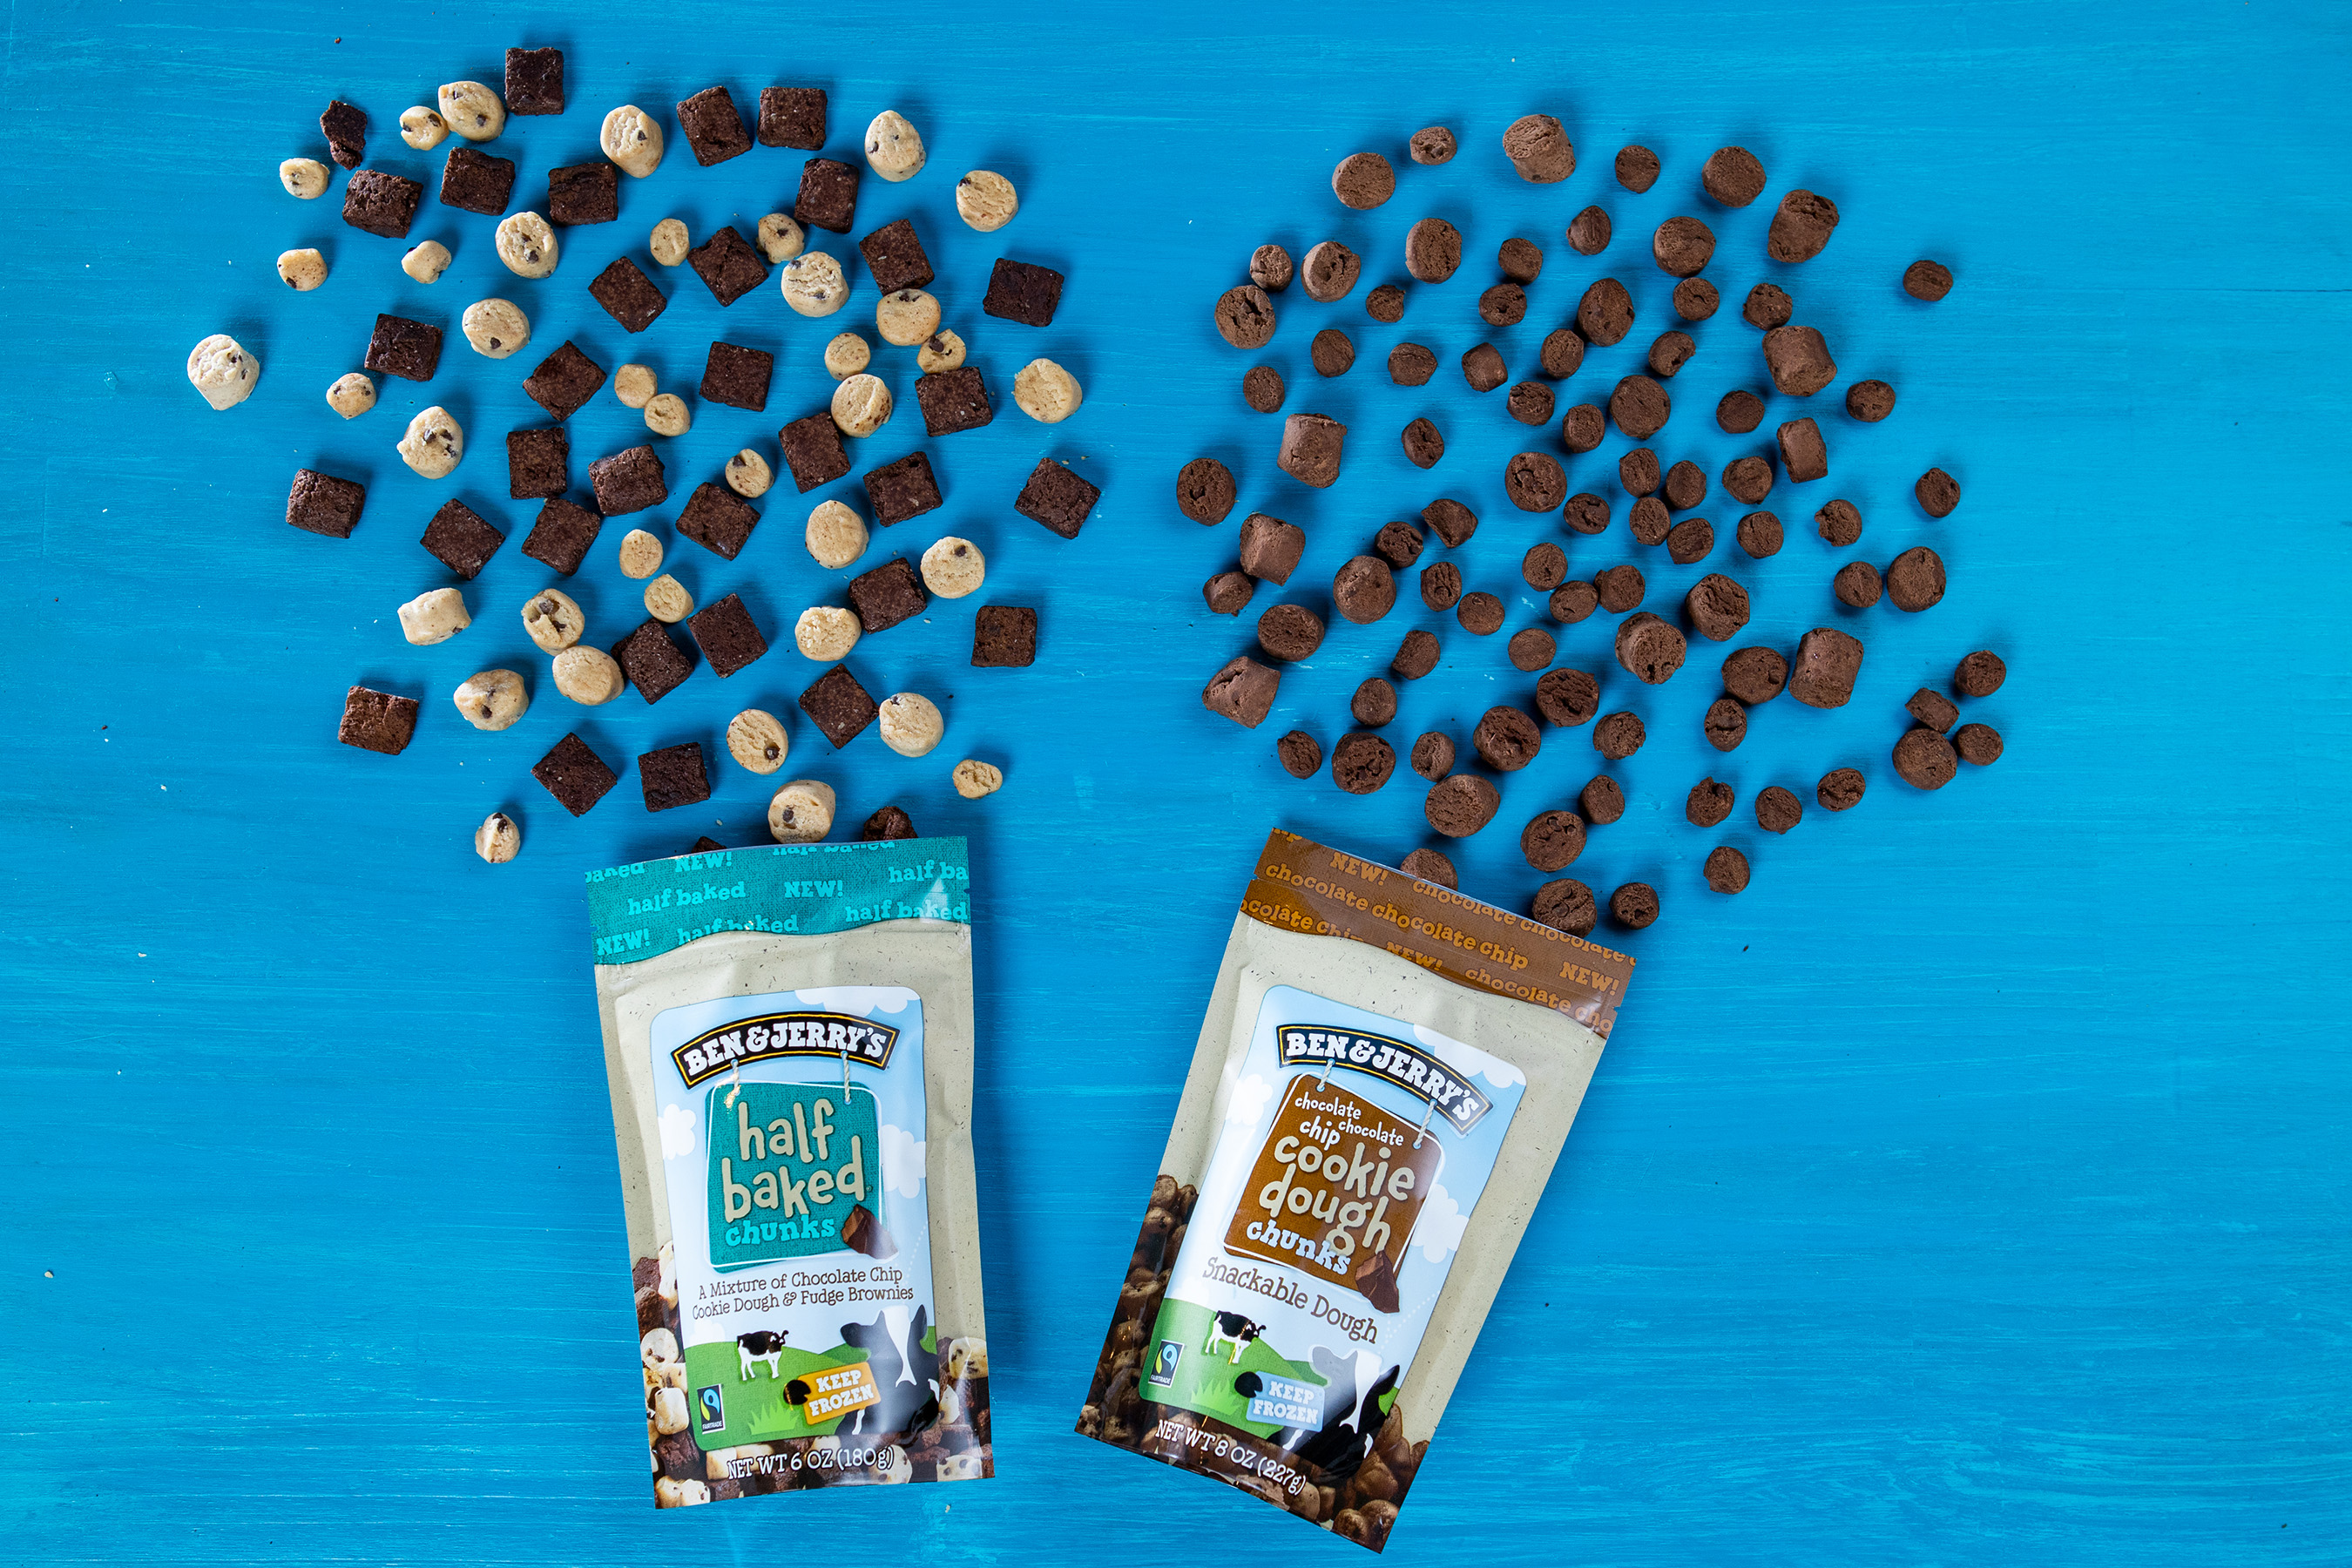 Ben & Jerry's are the dough-riginals when it comes to adding cookie dough to ice cream. Now available: Chocolate Chocolate Chip Cookie Dough and Half Baked Chunks.